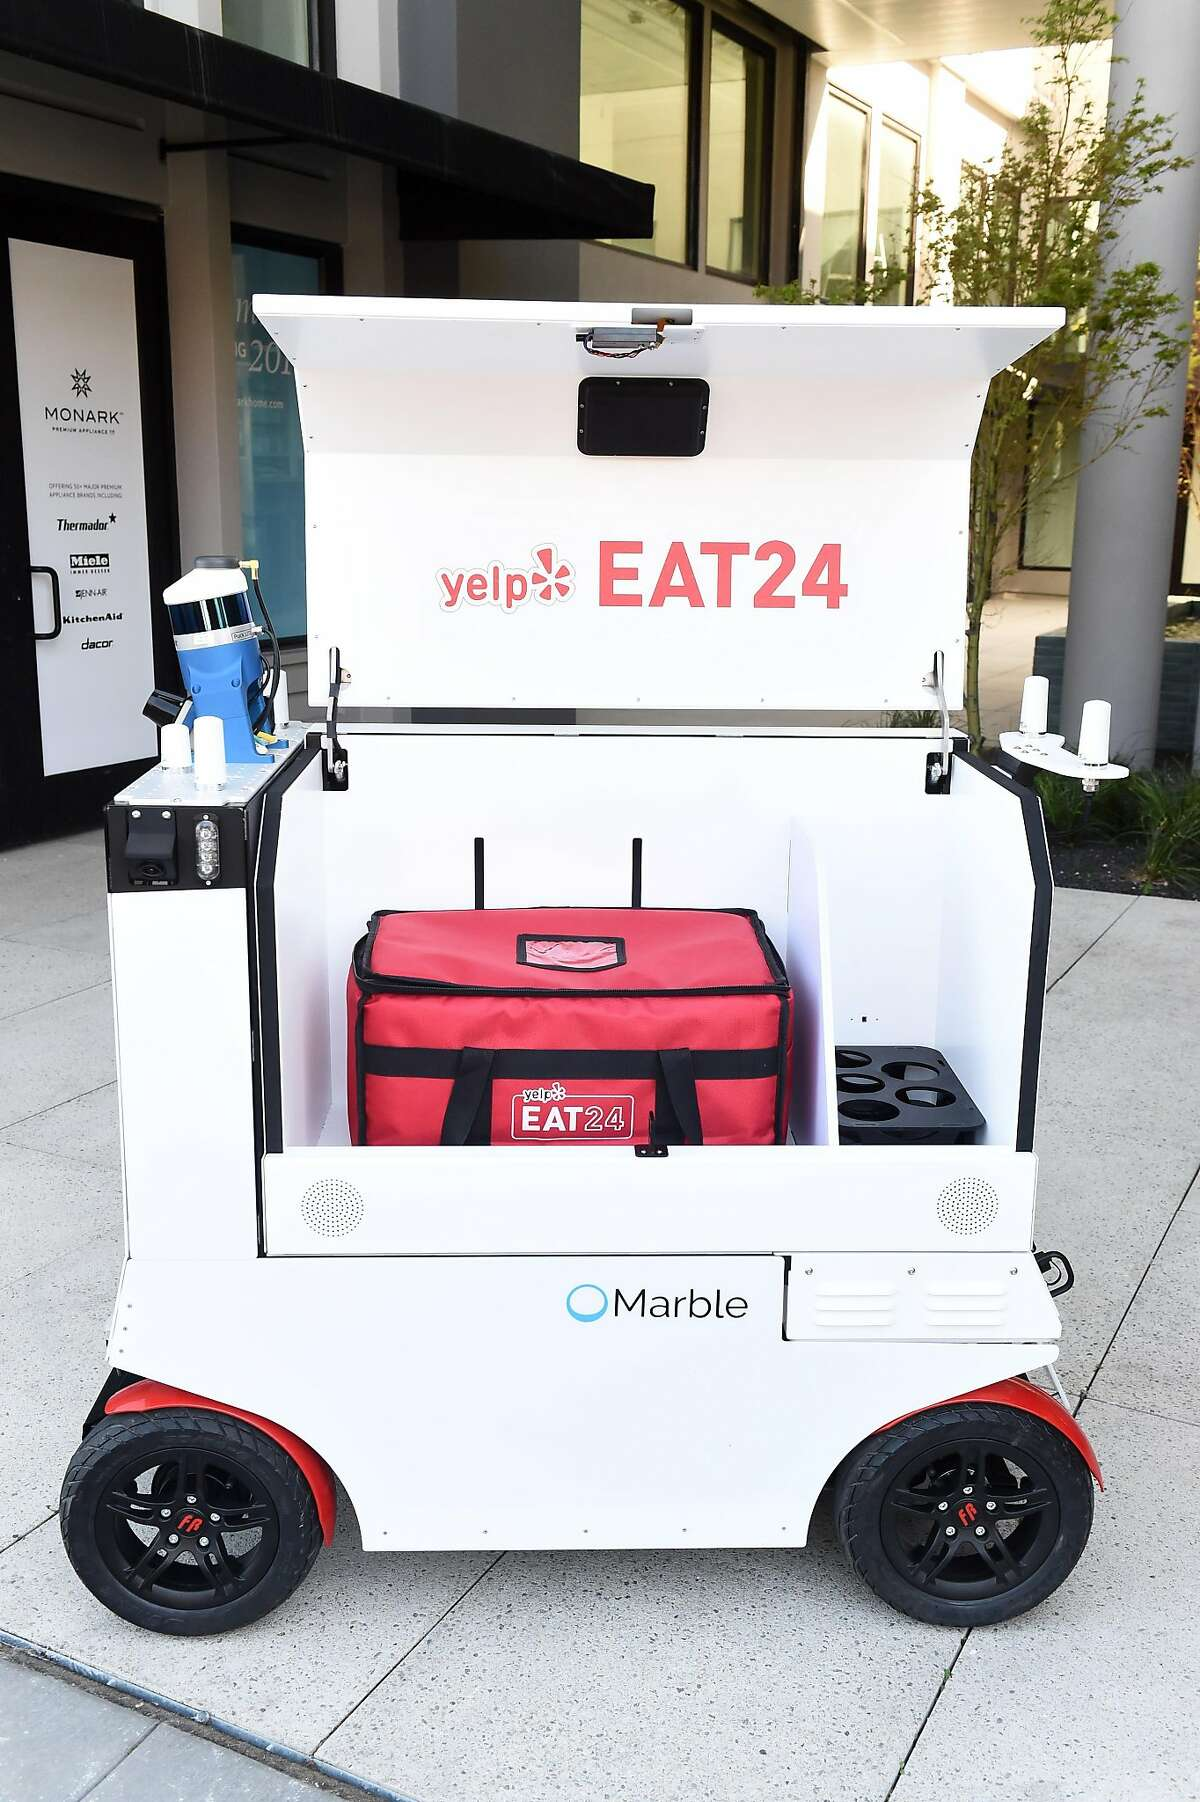 This robot, made by start up company Marble, is photographed on March 28, 2017 in San Francisco. It is made to deliver food and other things as well.